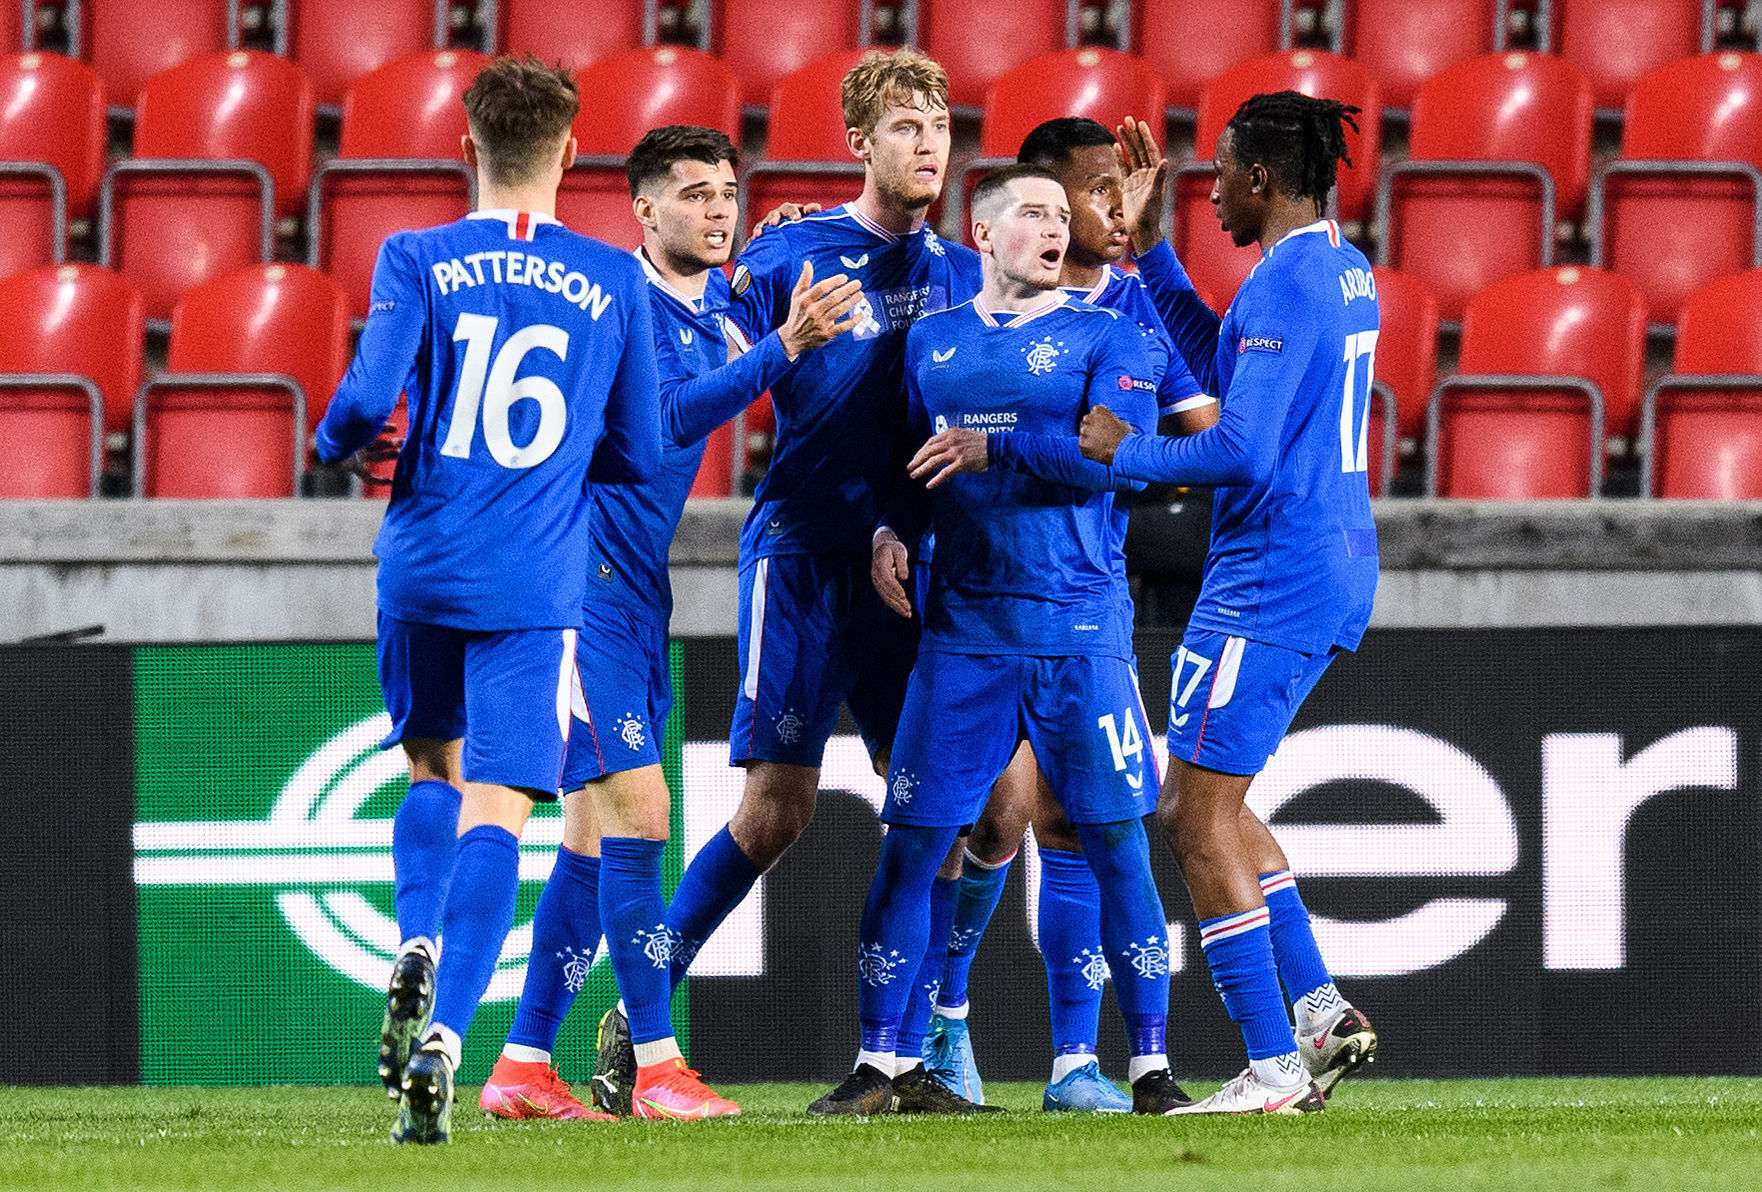 Slavia Prague 1-1 Rangers: Steven Gerrard's side have Europa League advantage ahead of Ibrox clash